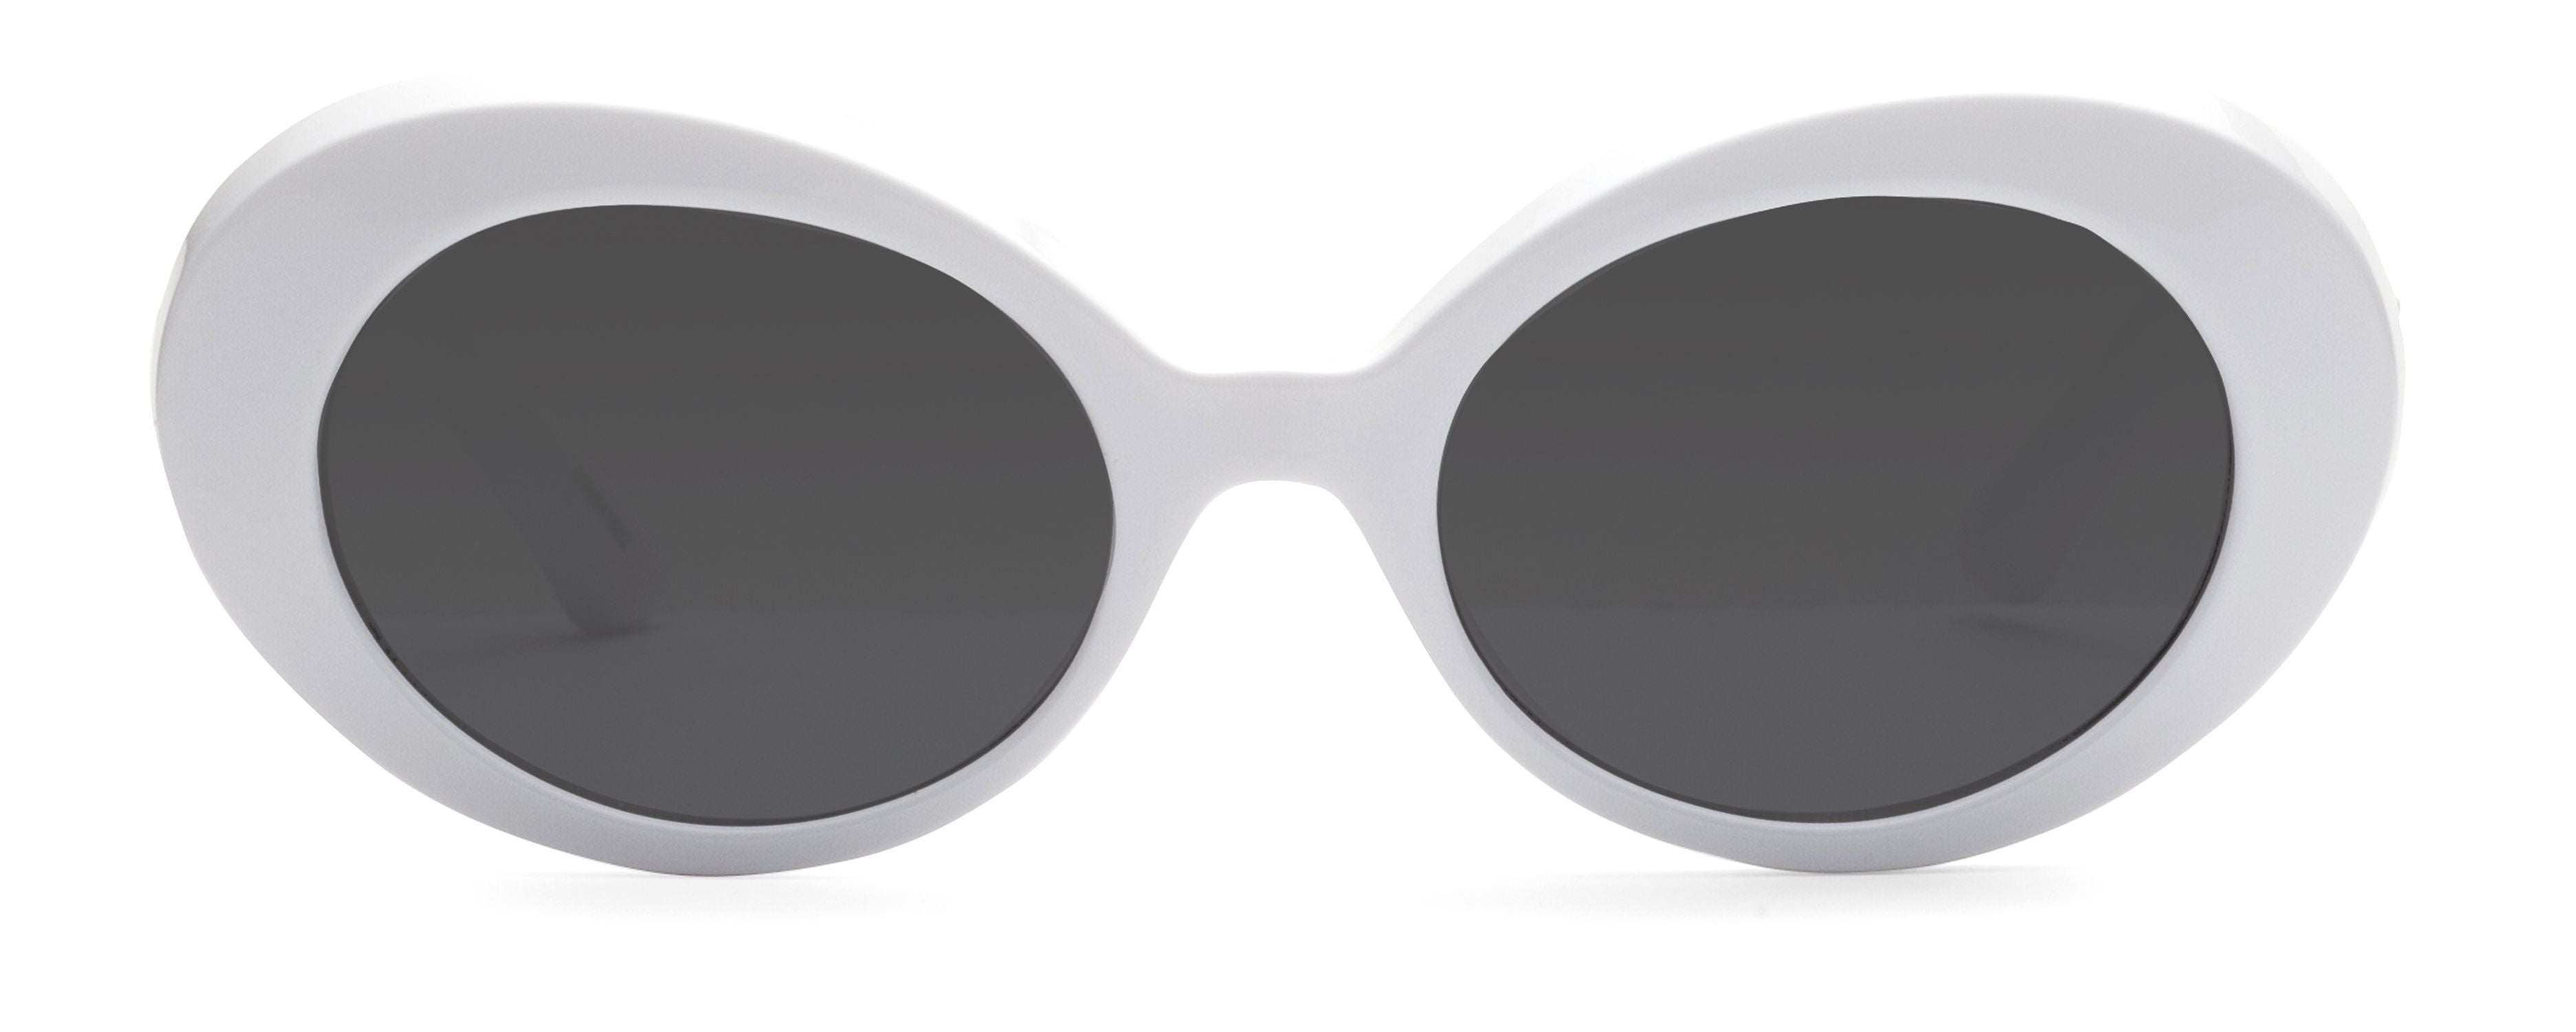 WOWZA White JUNiA Kids Sunglasses